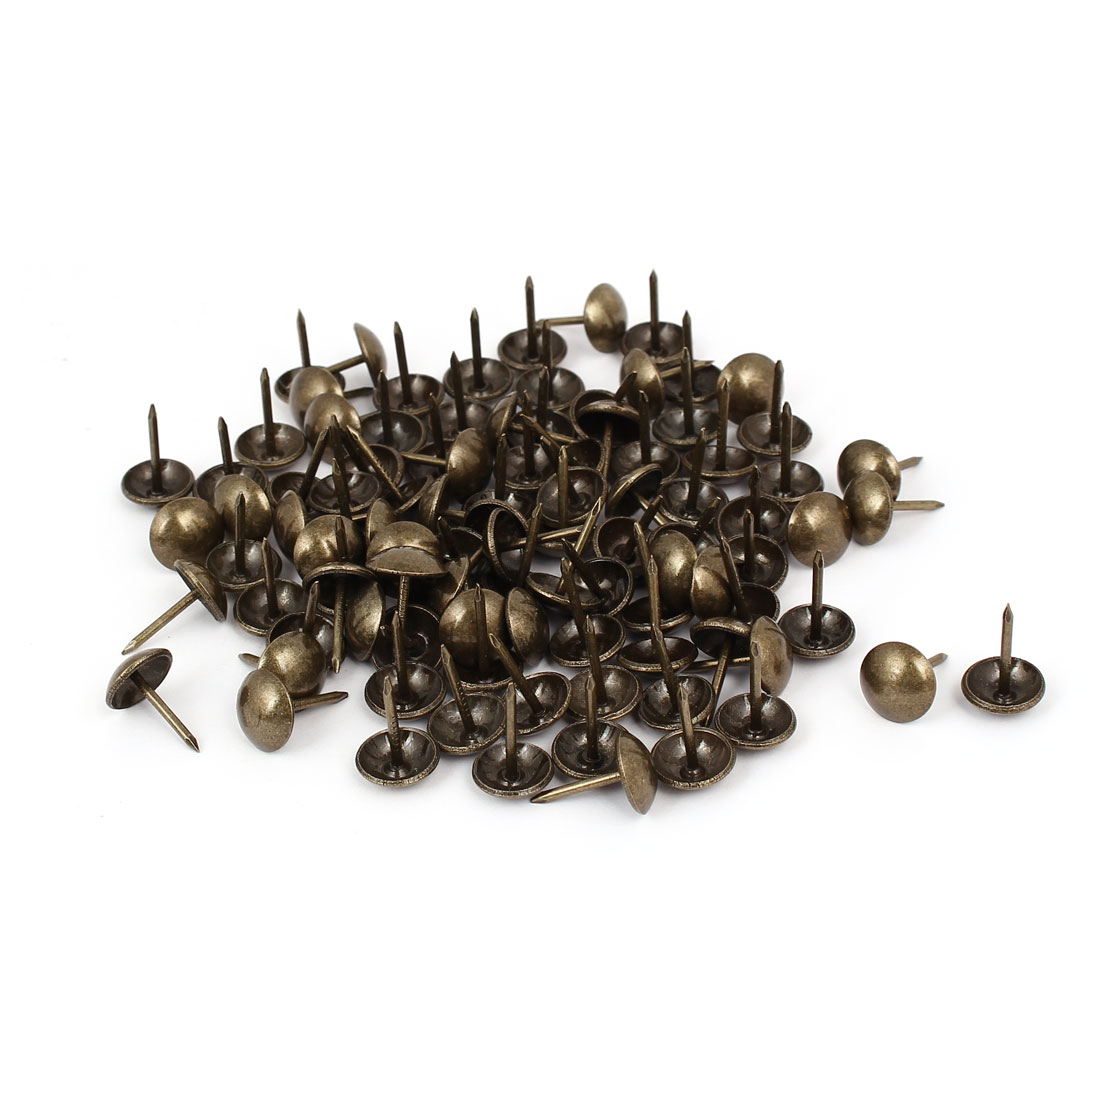 "Household Metal Domed Head Upholstery Tack Nail Bronze Tone 7/16"" Dia 120pcs"